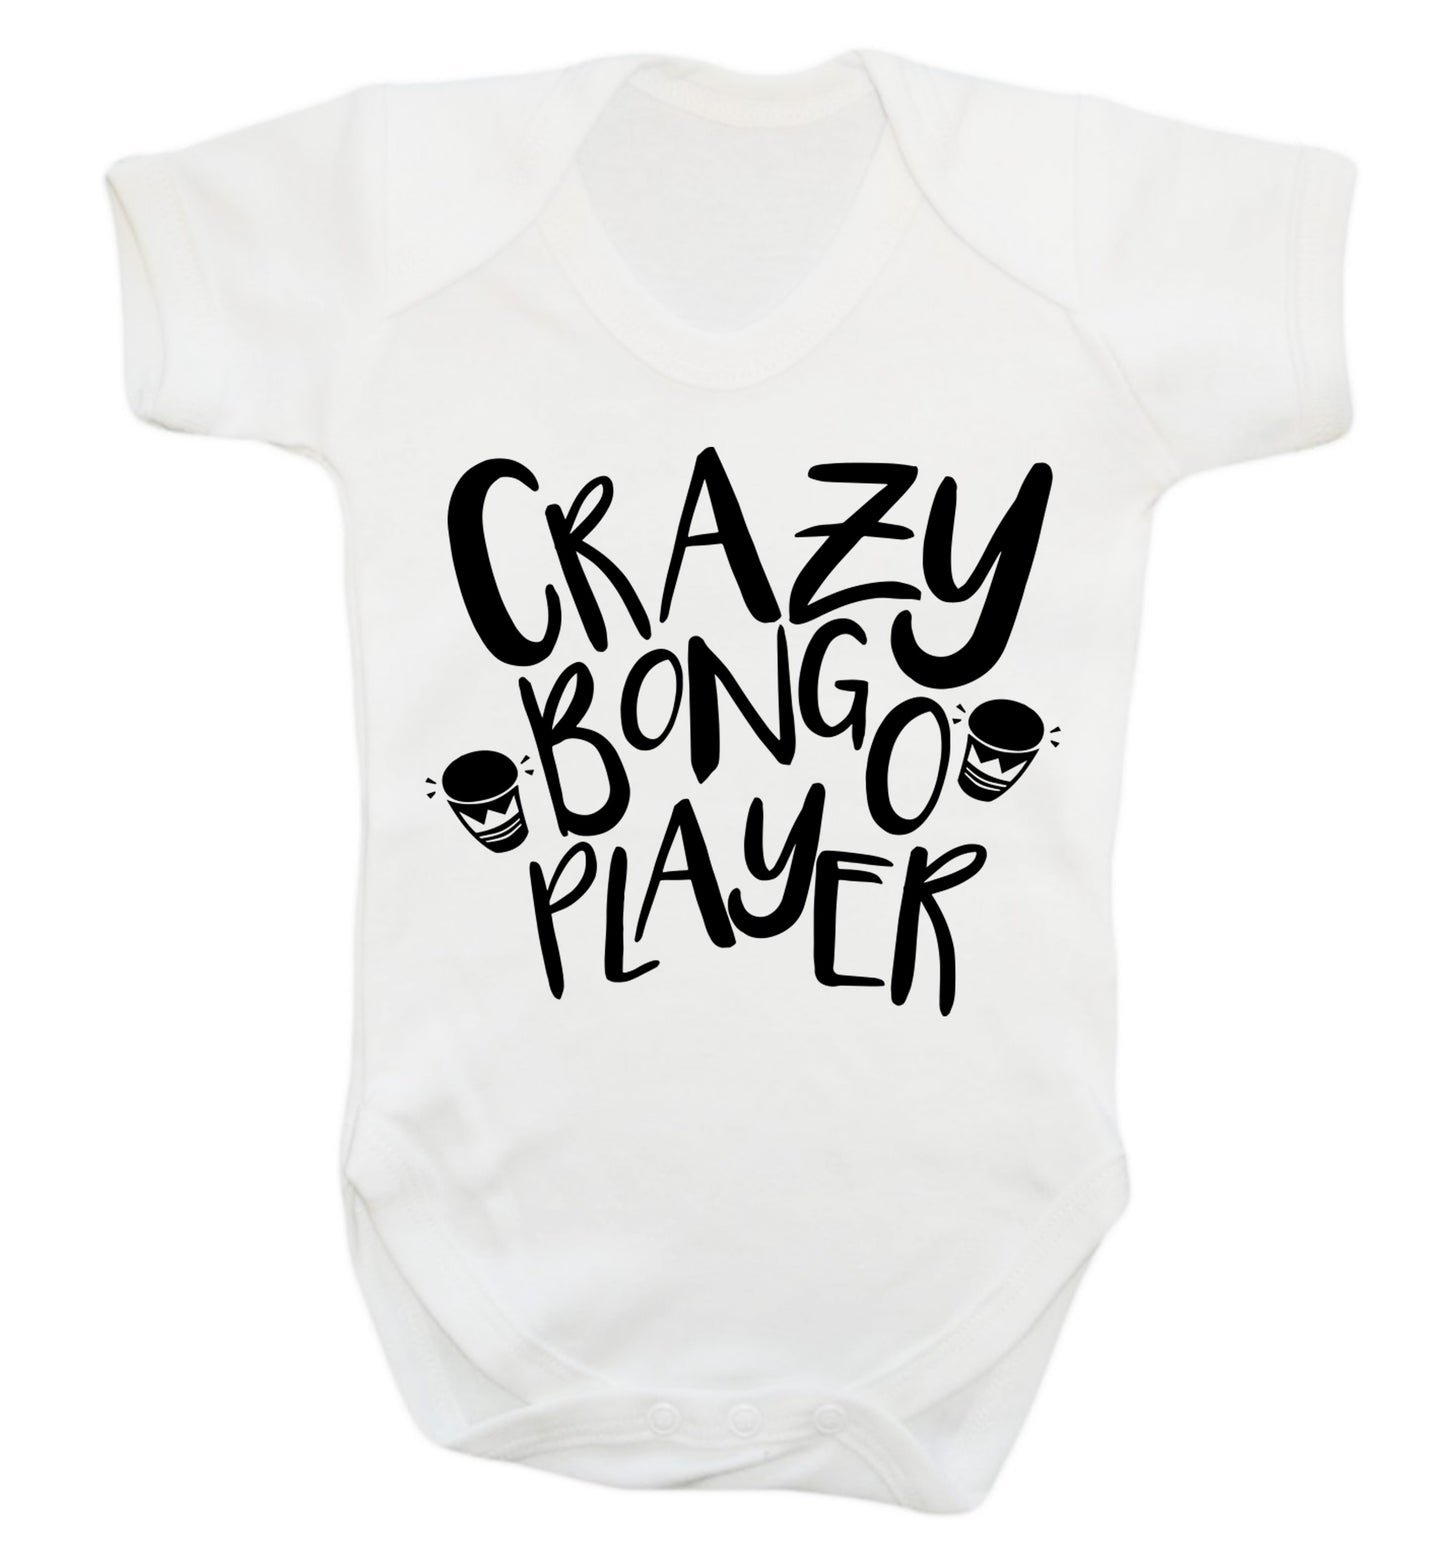 Crazy bongo player Baby Vest white 18-24 months